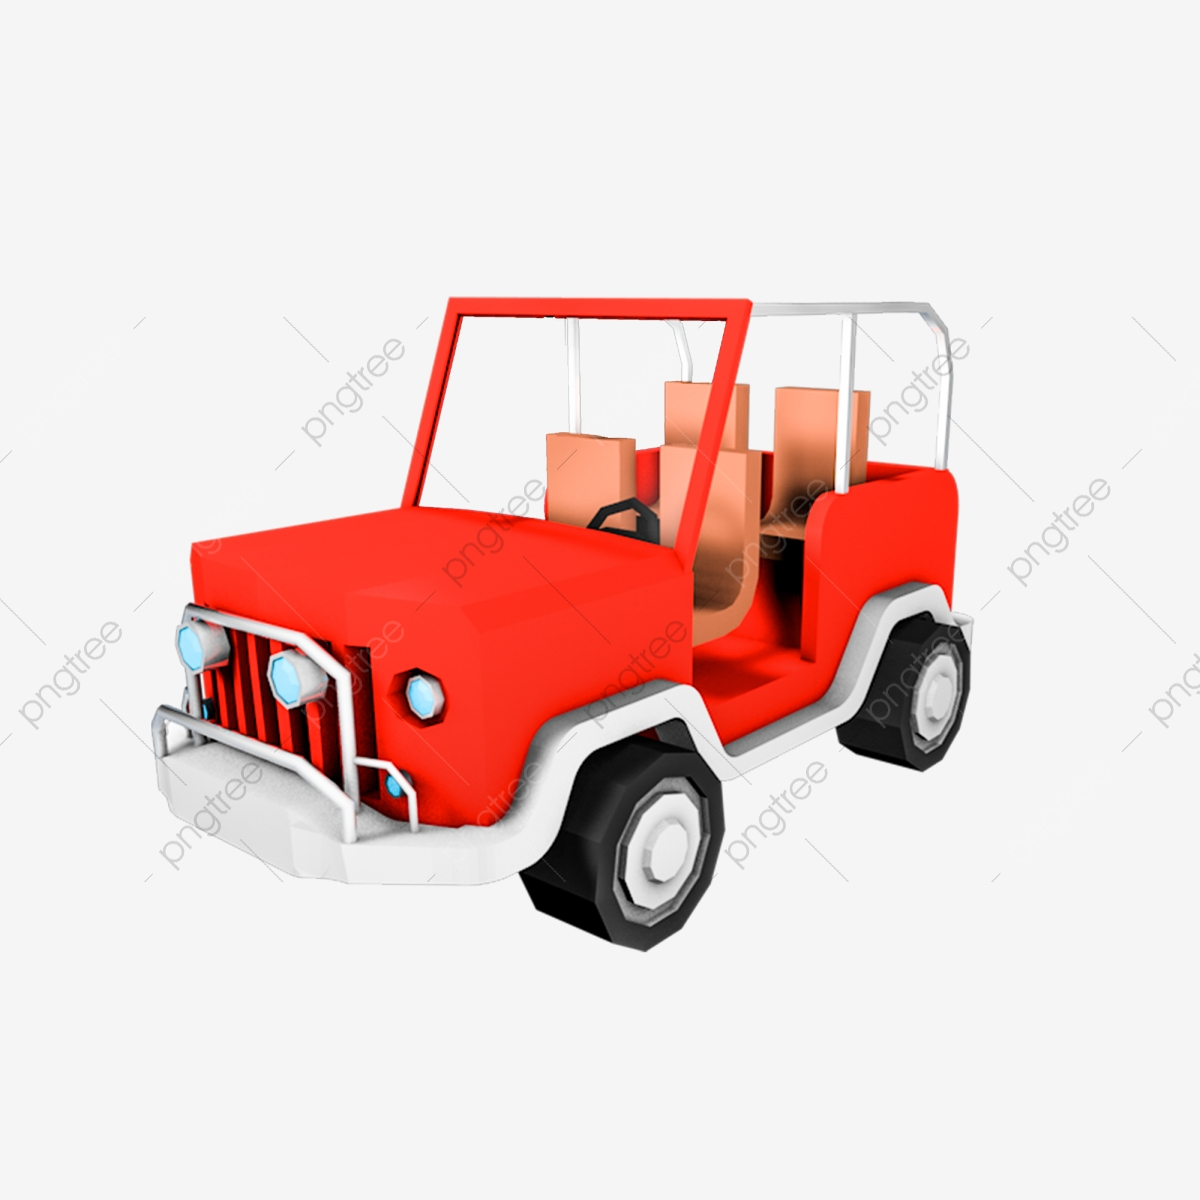 Car Cartoon Red Stereo 3d Jeep Car Cartoon Red Stereoscopic 3d